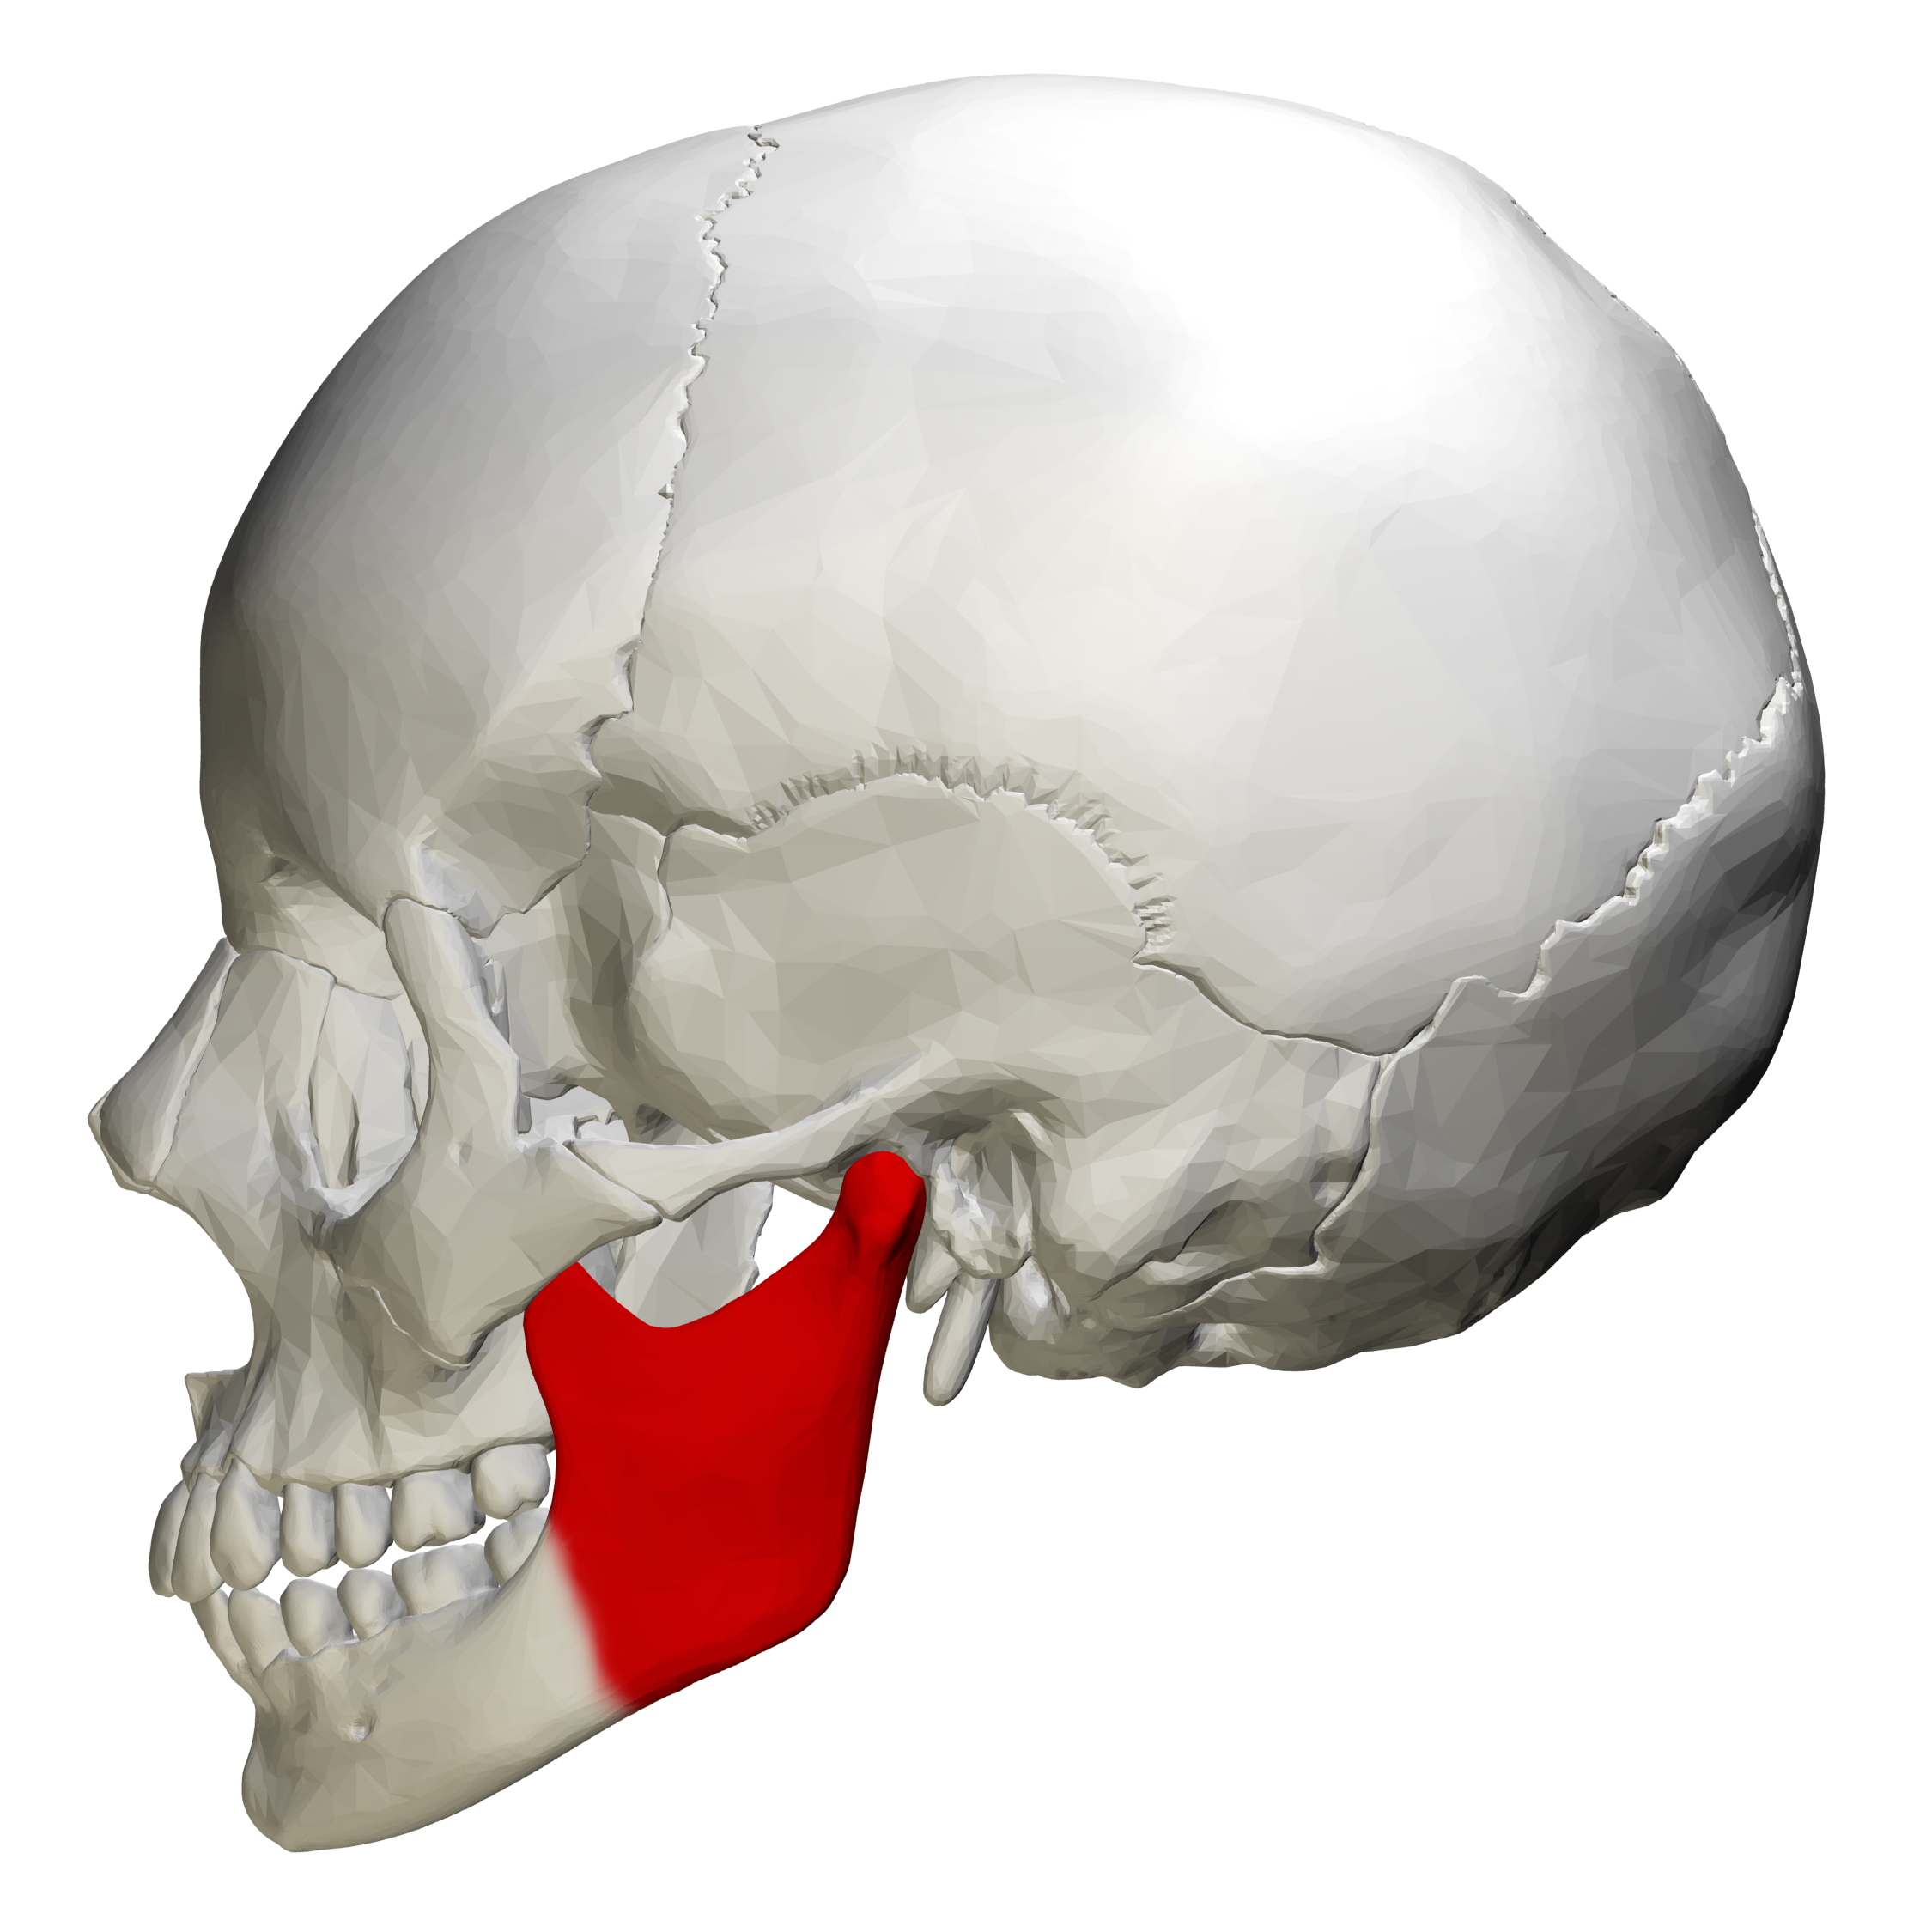 Ramus_of_the_mandible_-_skull_-_lateral_view.png